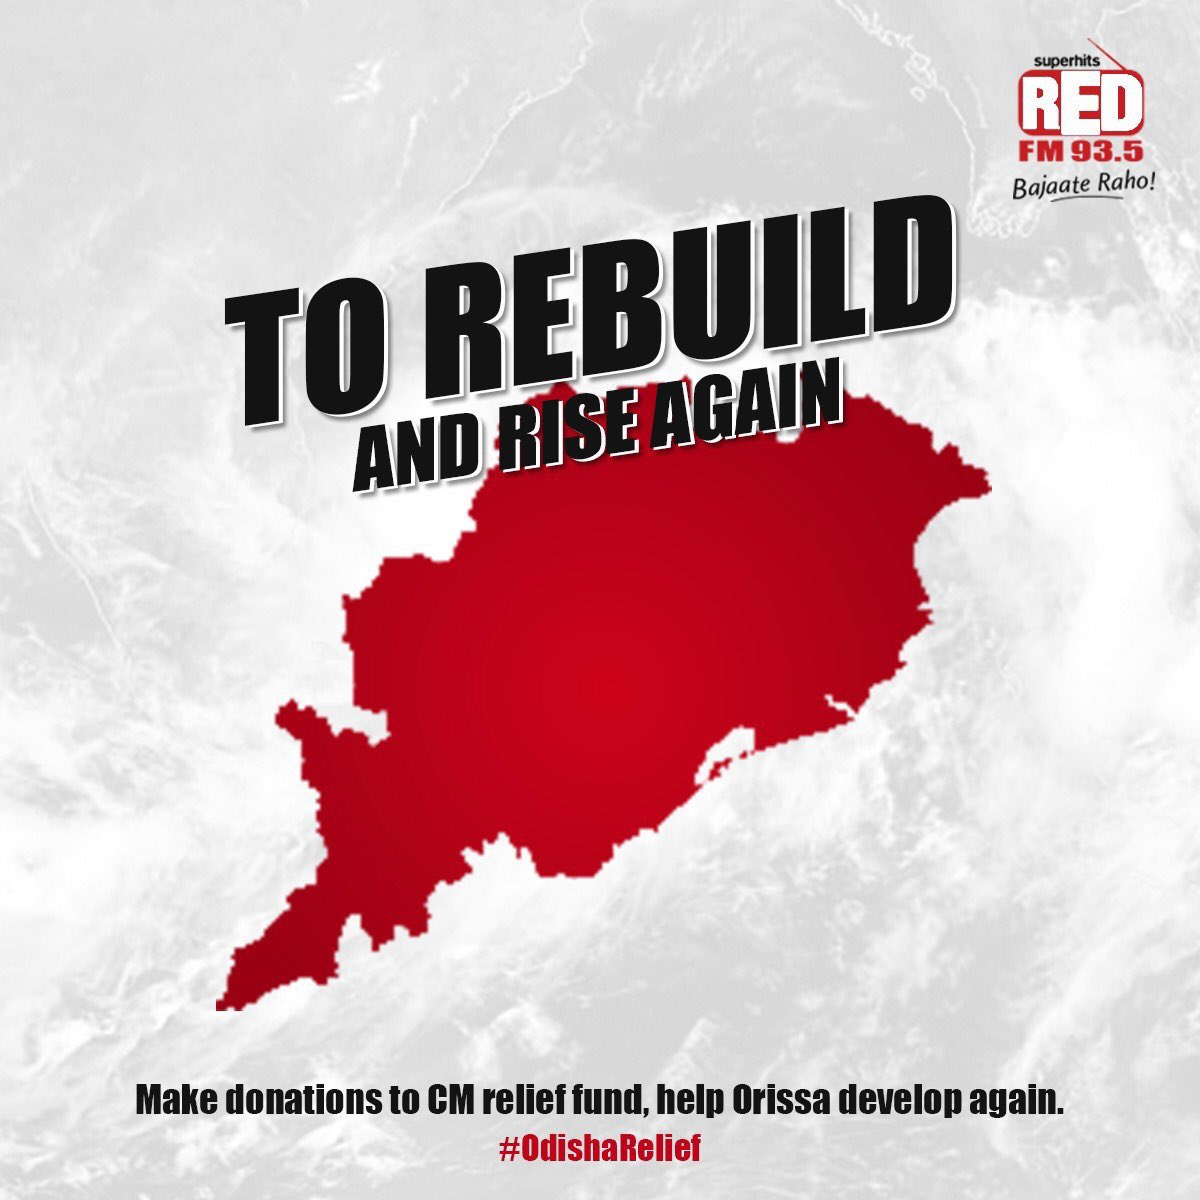 Help to rebuild Orissa. Donate now: Acc name: Odisha chief minister's relief fund Account number: 006101057842 IFSC code: ICIC0000061   UPI VP A- ODISHACMRF.FANI@ICIC Fund via link: https://t.co/SAf3x0EPIp @Naveen_Odisha @CMO_Odisha #OdishaAfterFani #OdishaPrepared4Fani https://t.co/0vYvjYTPbK